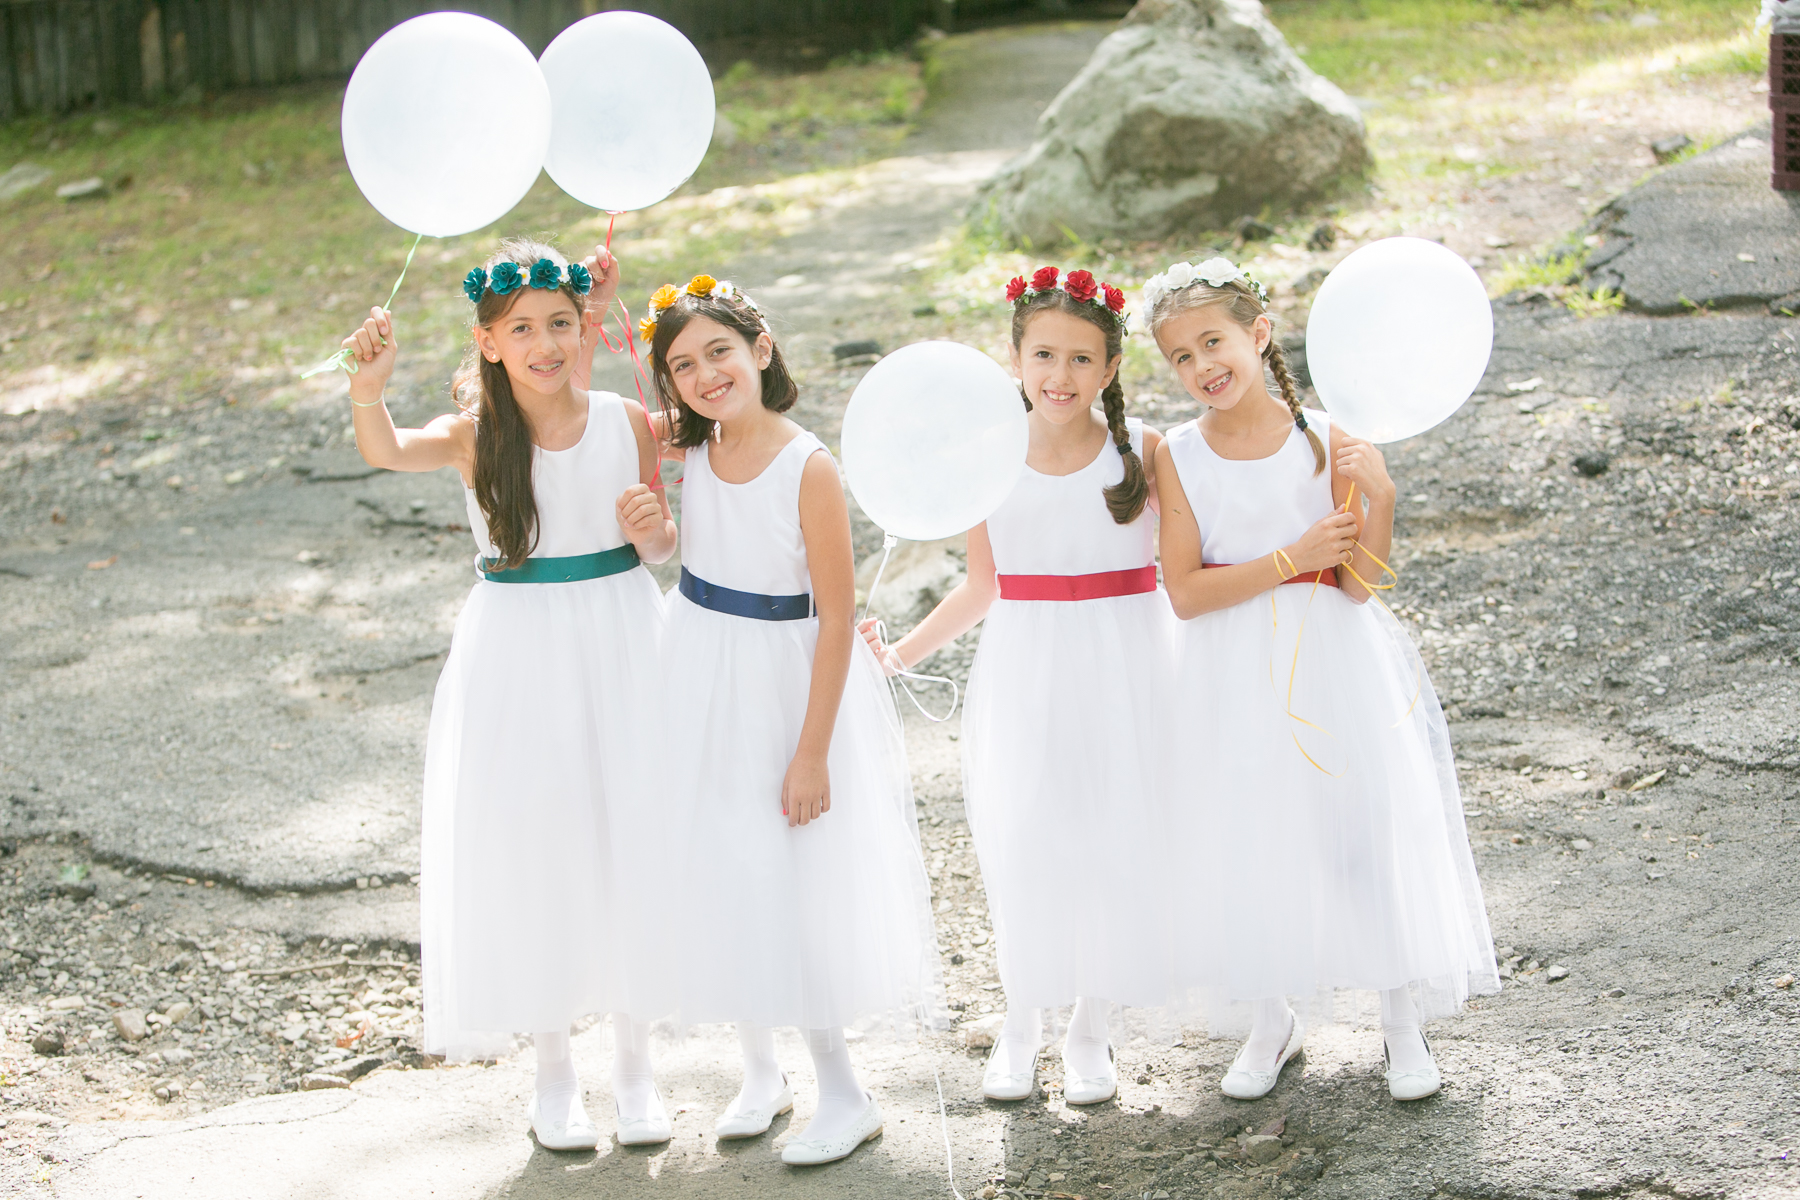 Girls in white dresses before the wedding ceremony